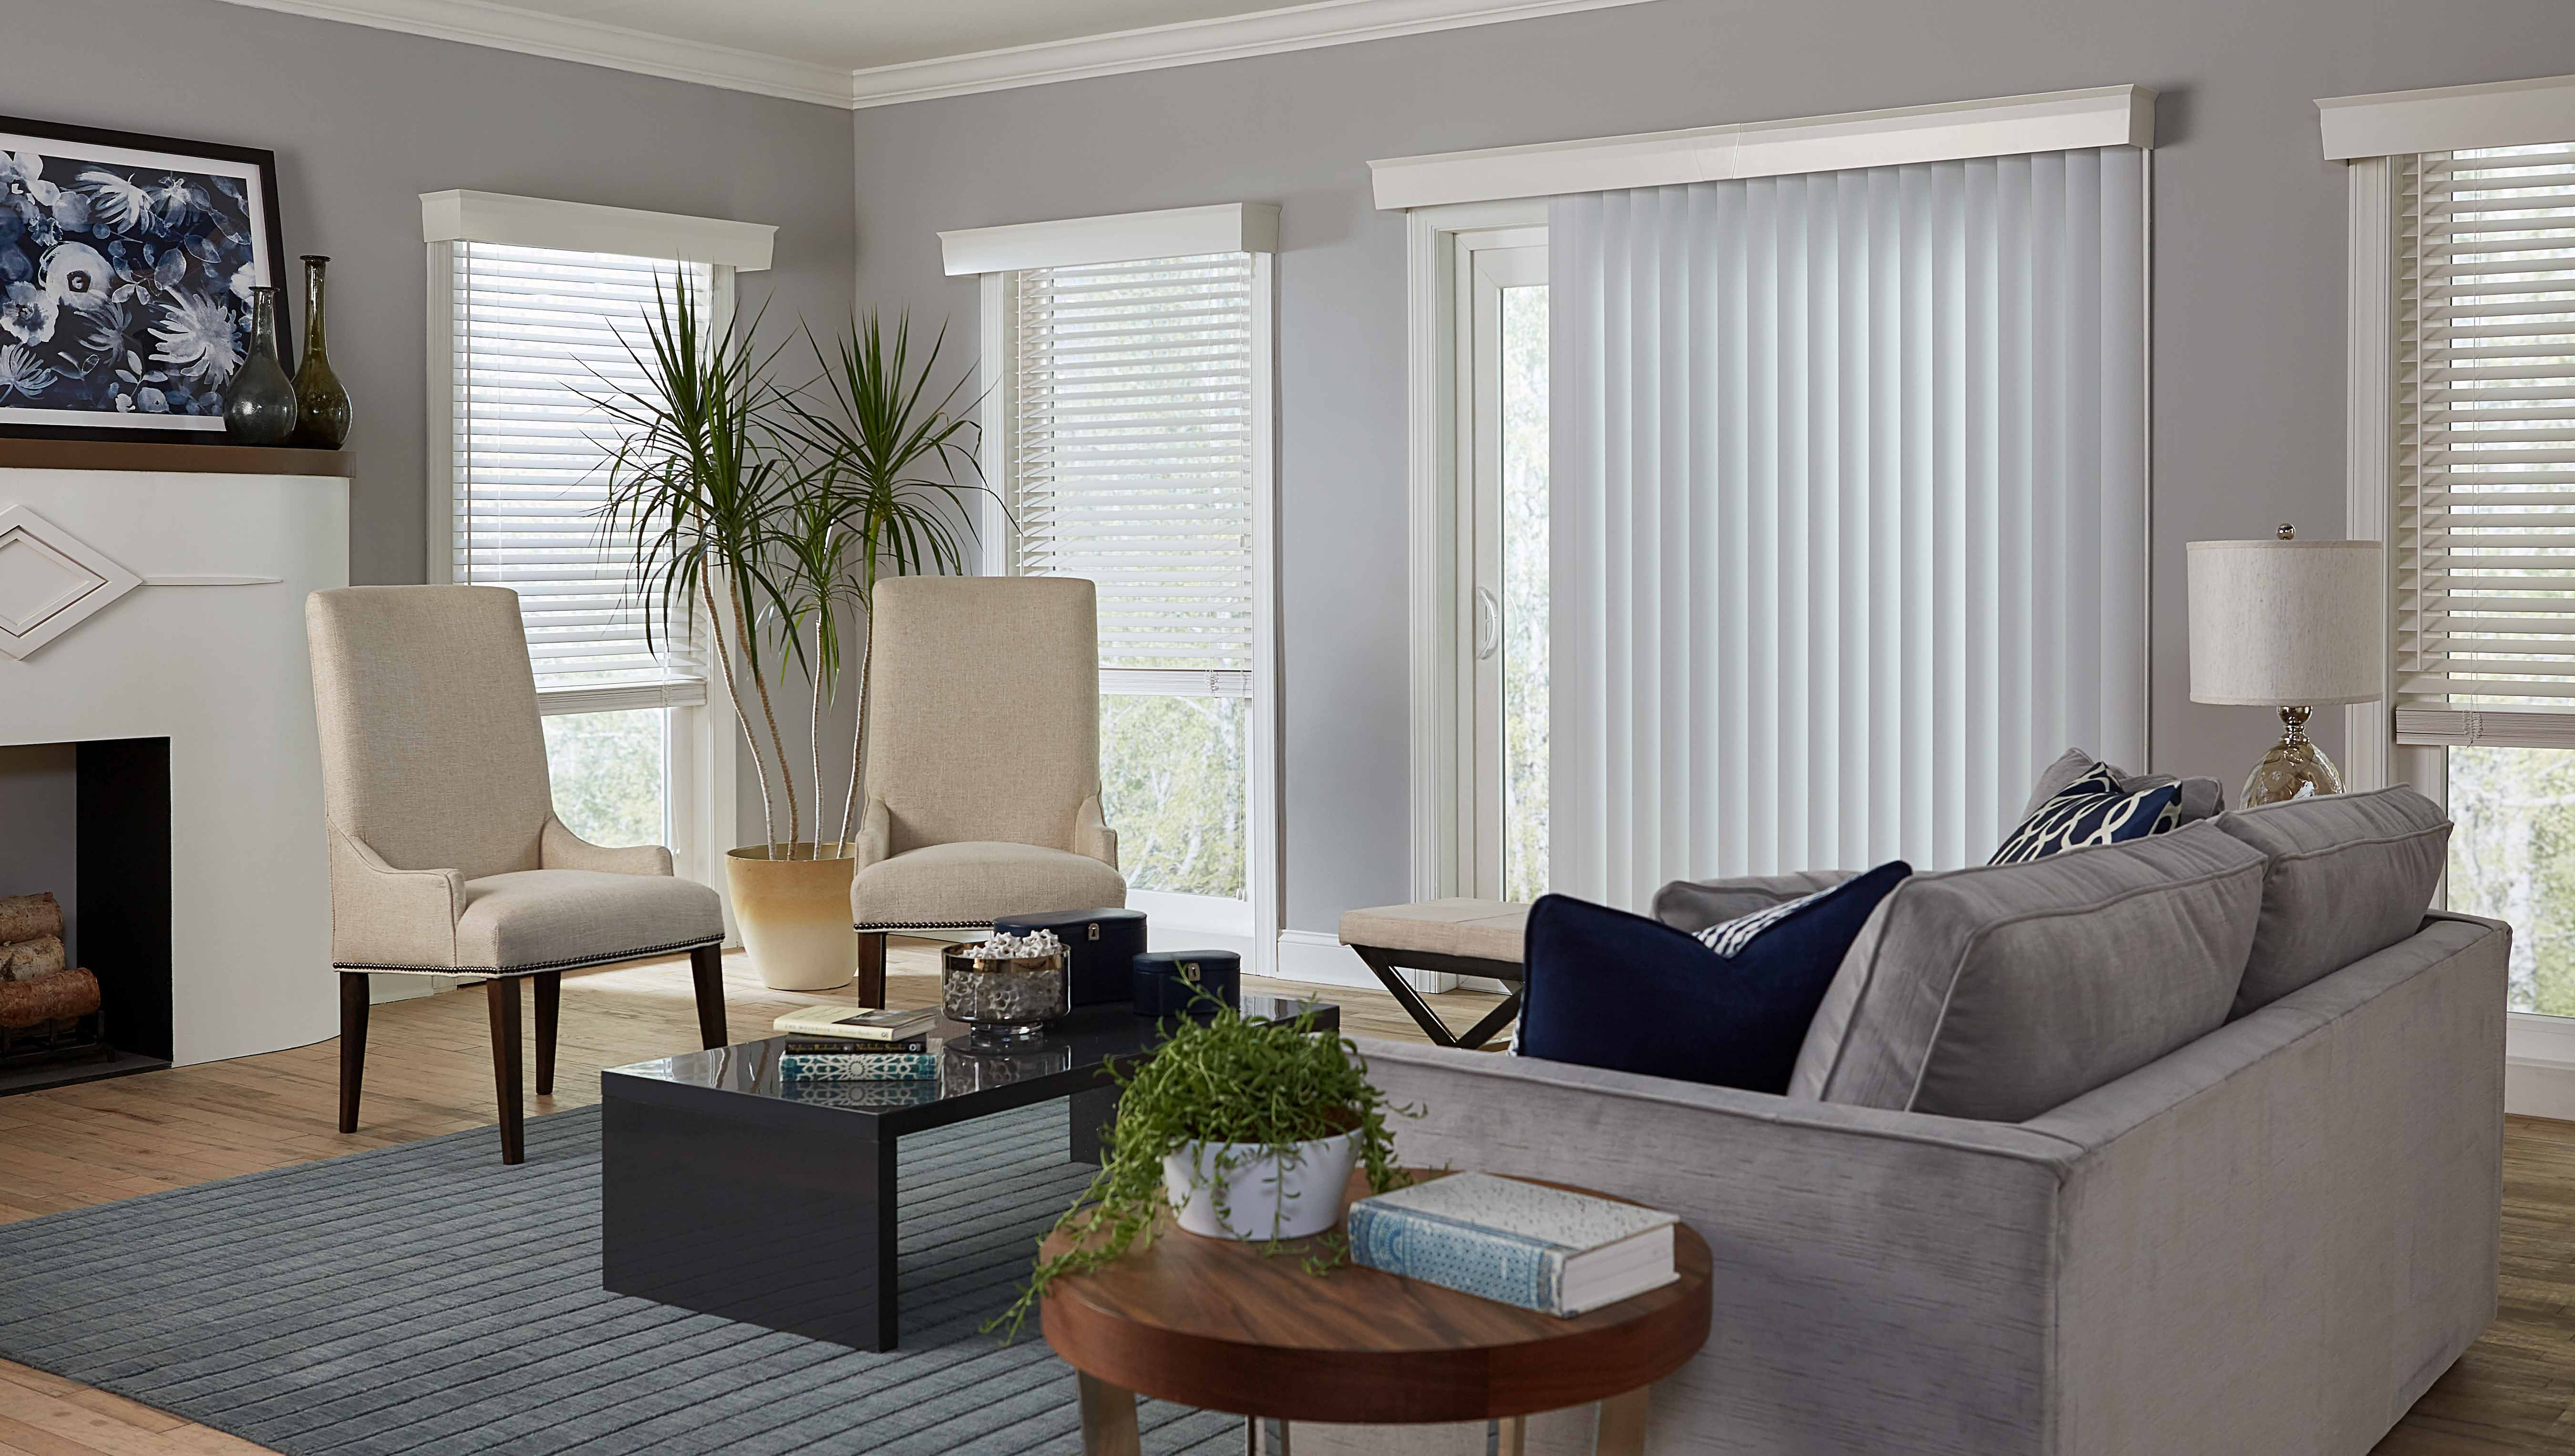 guide how renovation and curtains day blinds choosing reviews home choose dressing to shades your window pick